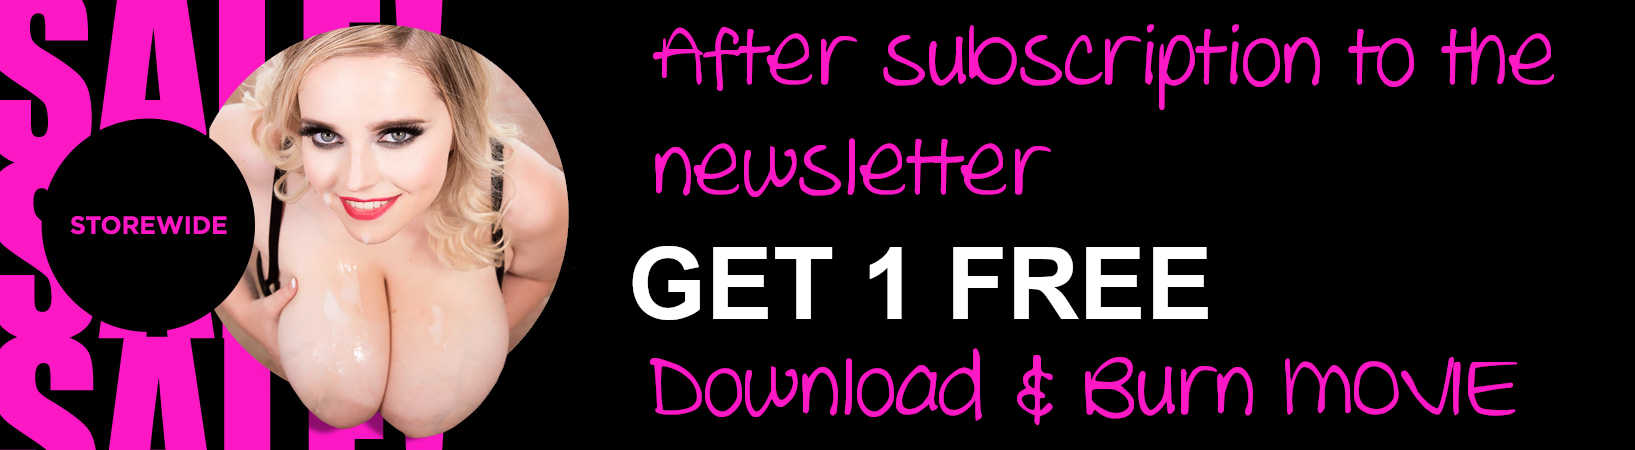 After subscription to the newsletter GET 1 FREE Download & Burn MOVIE